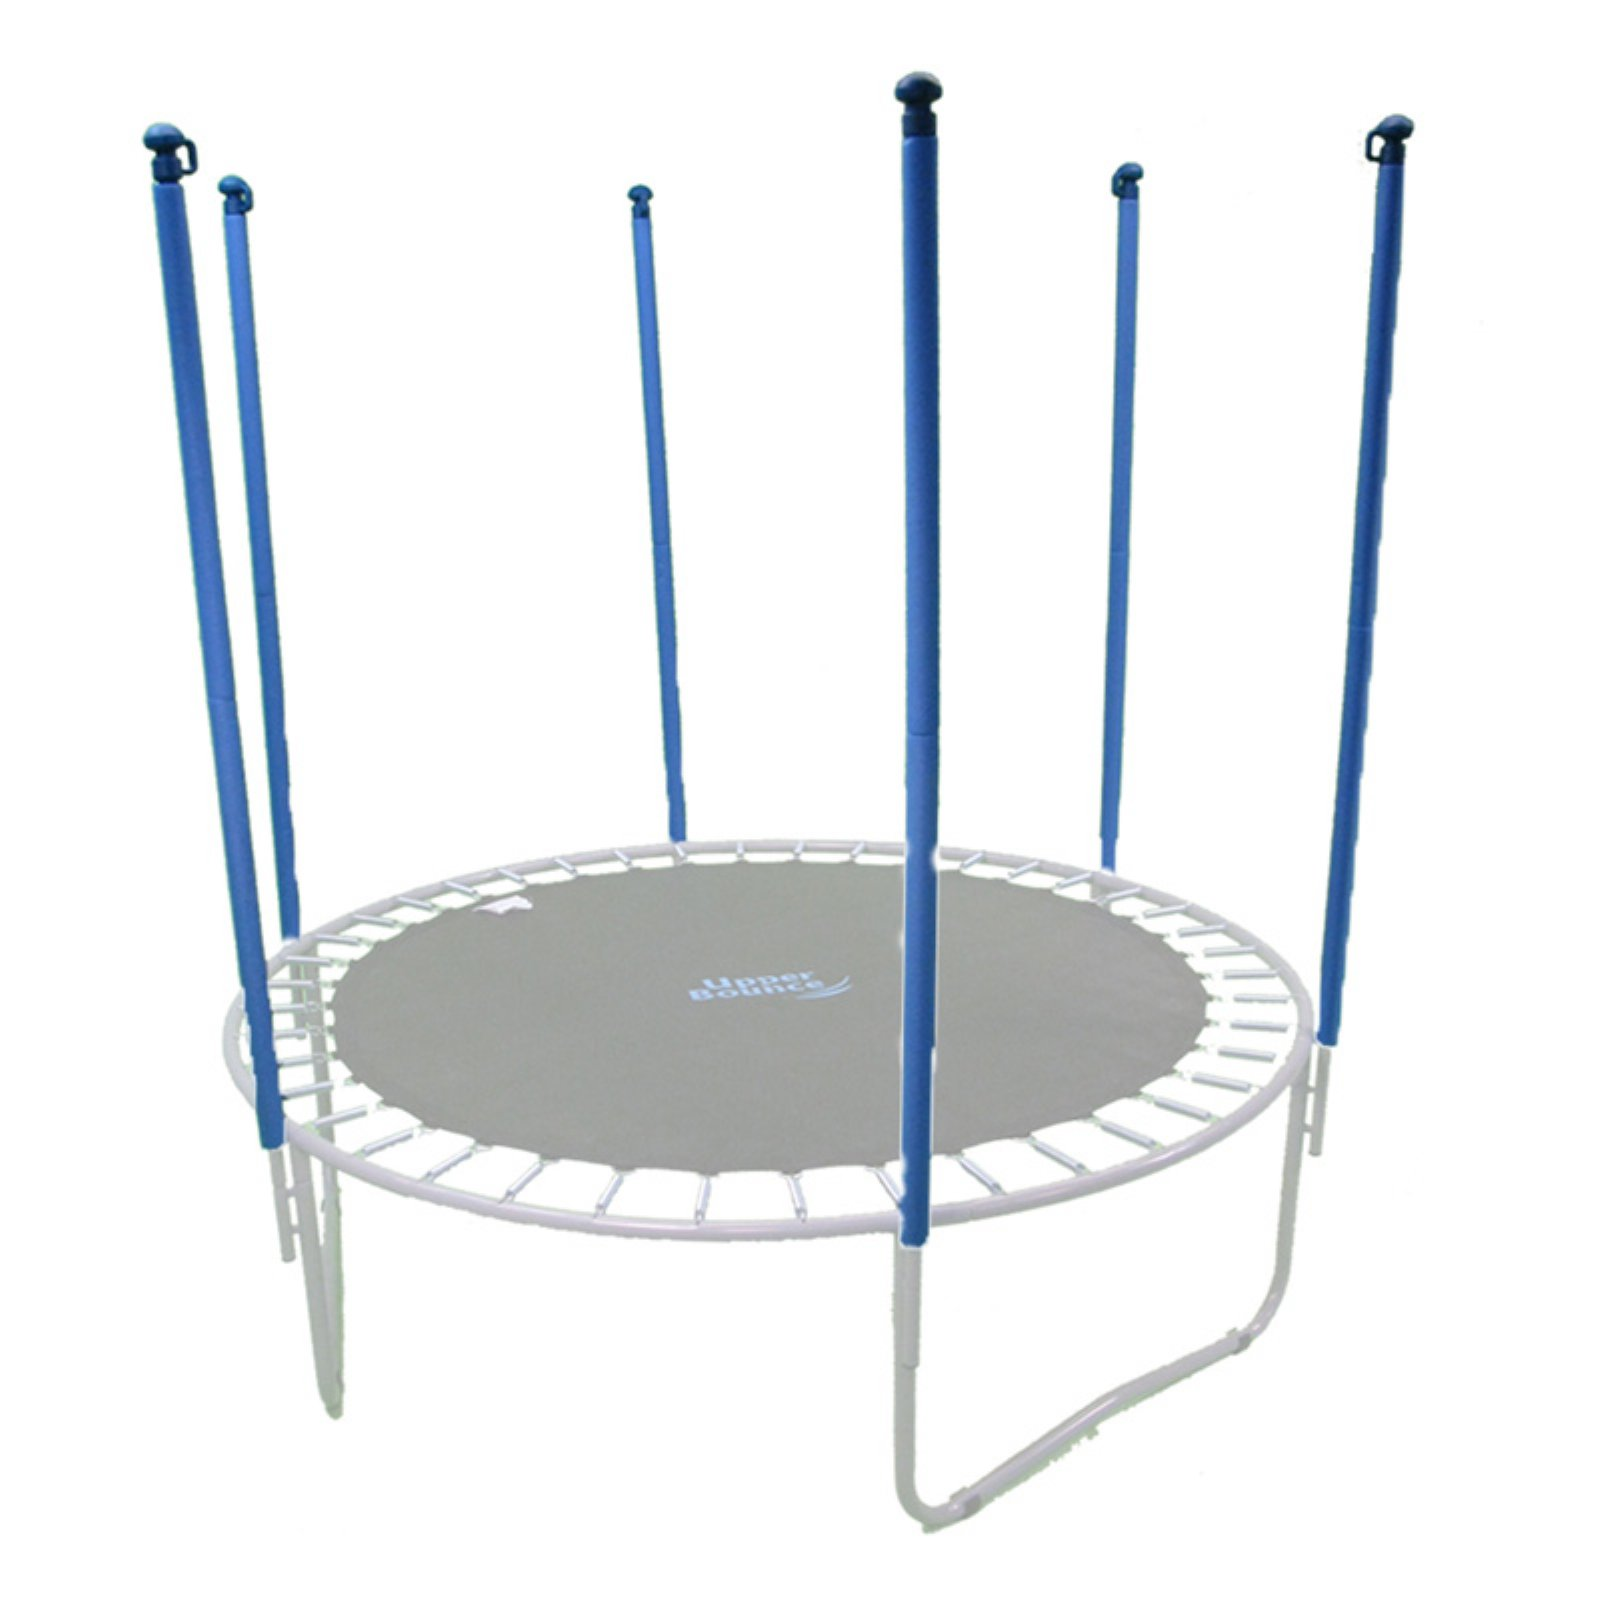 Upper Bounce Trampoline Enclosure Poles and Hardware